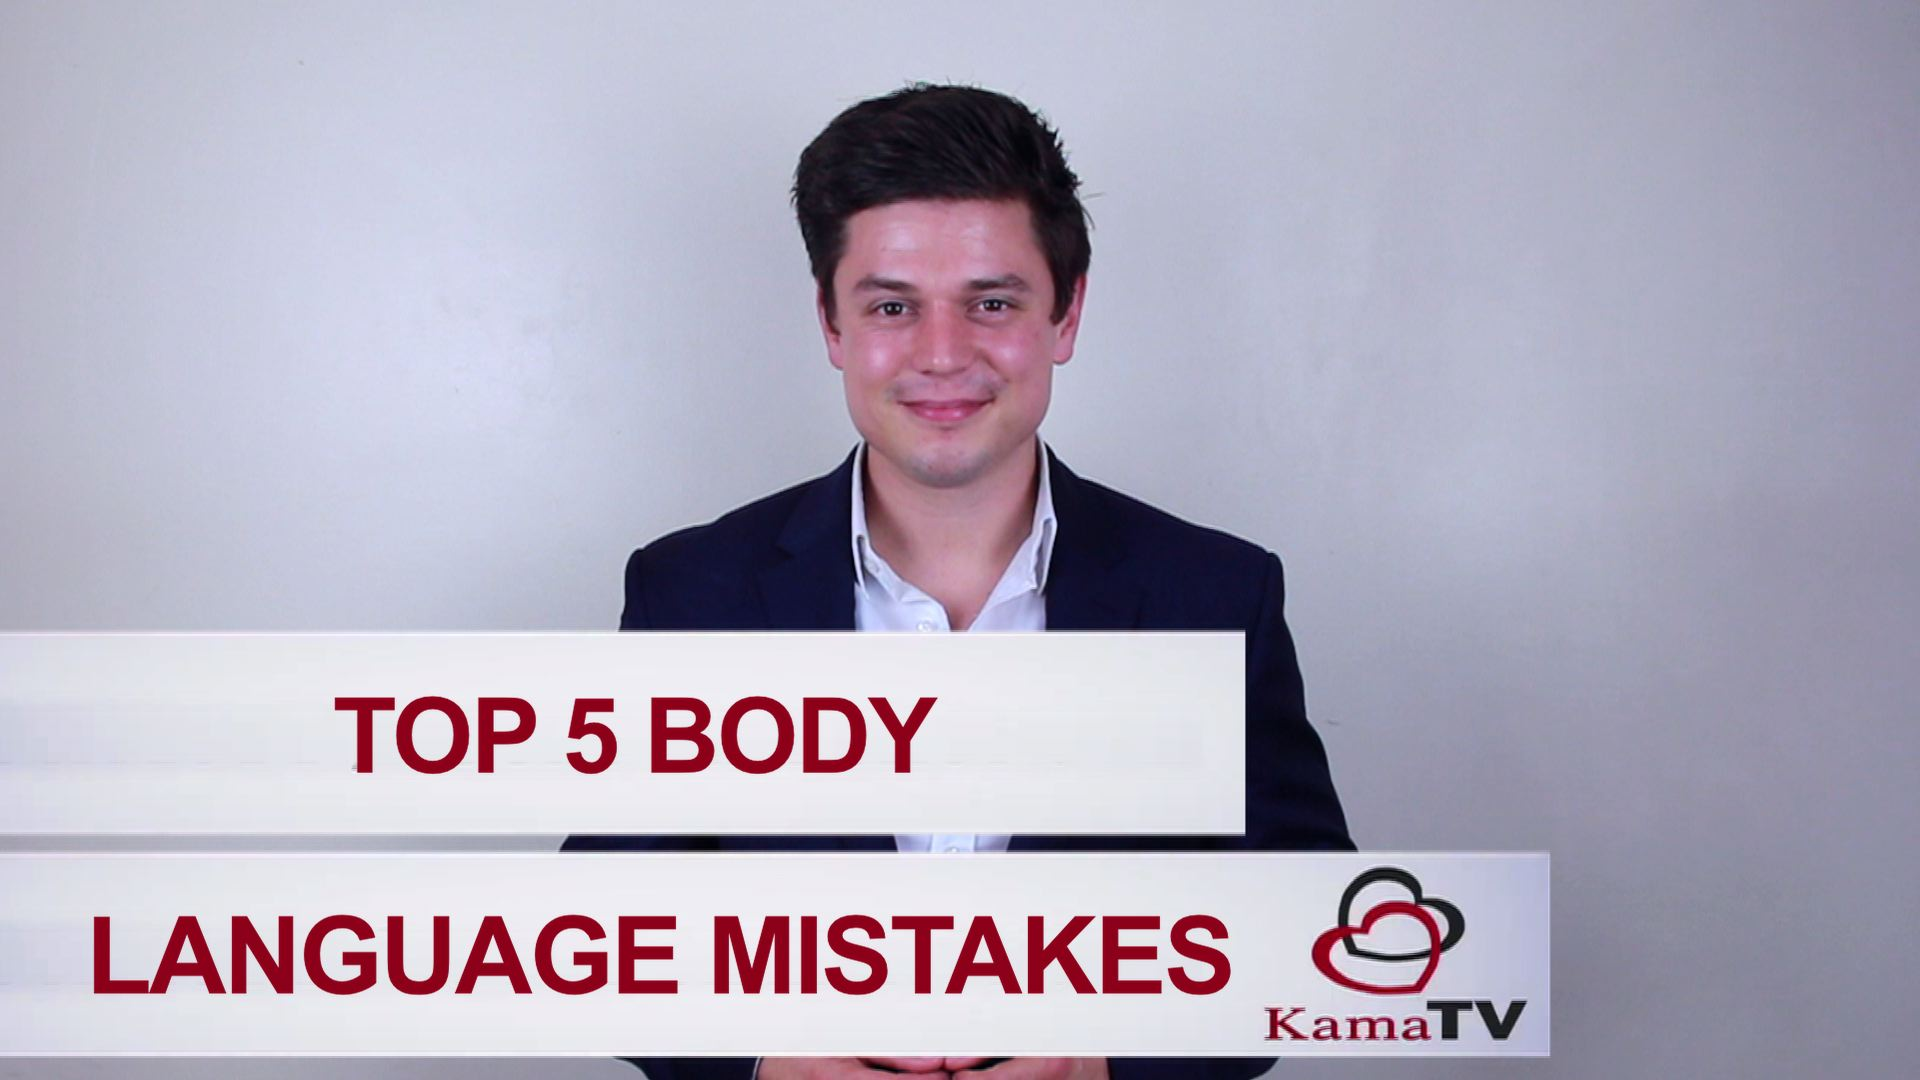 Top 5 Body Language Mistakes